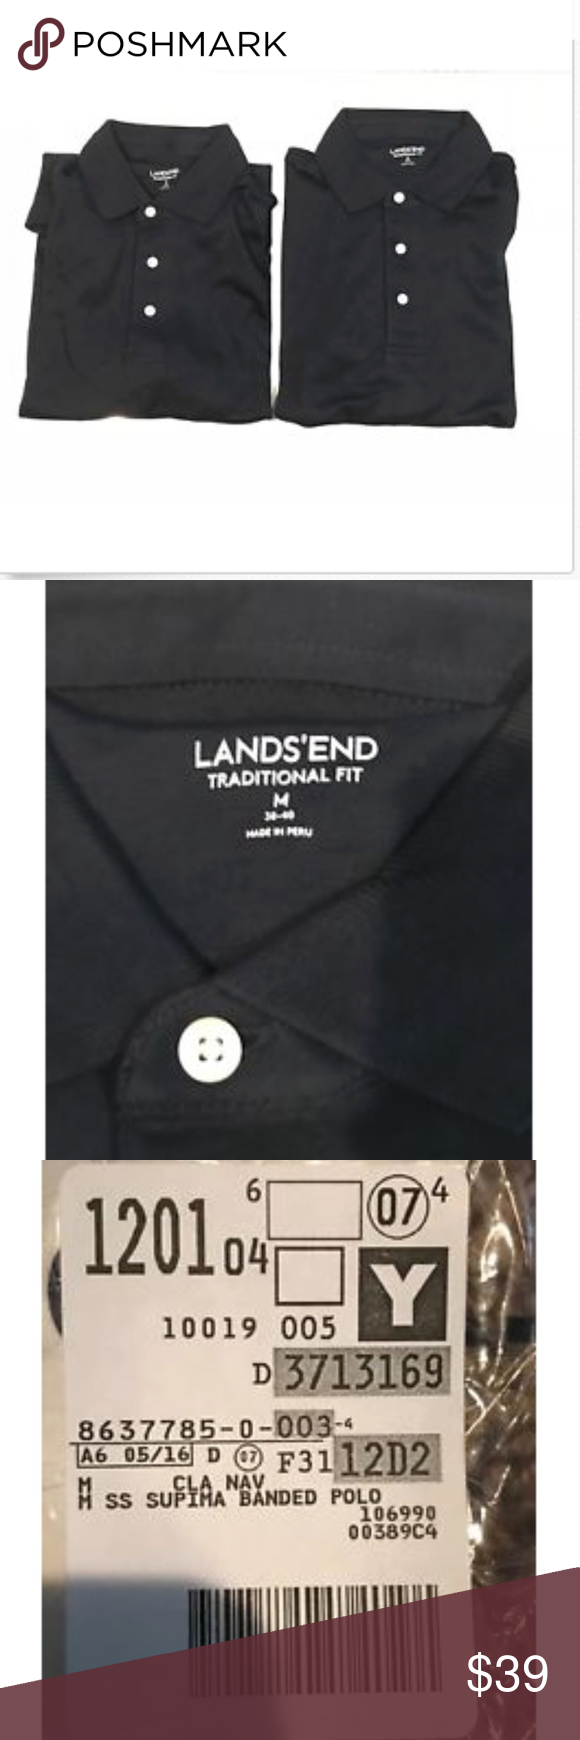 4308070b35a 2 Lands End Mens Supima Banded Polo Shirts 2 LANDS END Men s Tailored Fit Short  Sleeve Classic DARK Navy Supima Polo Shirt in a size Medium (38 40) that is  ...